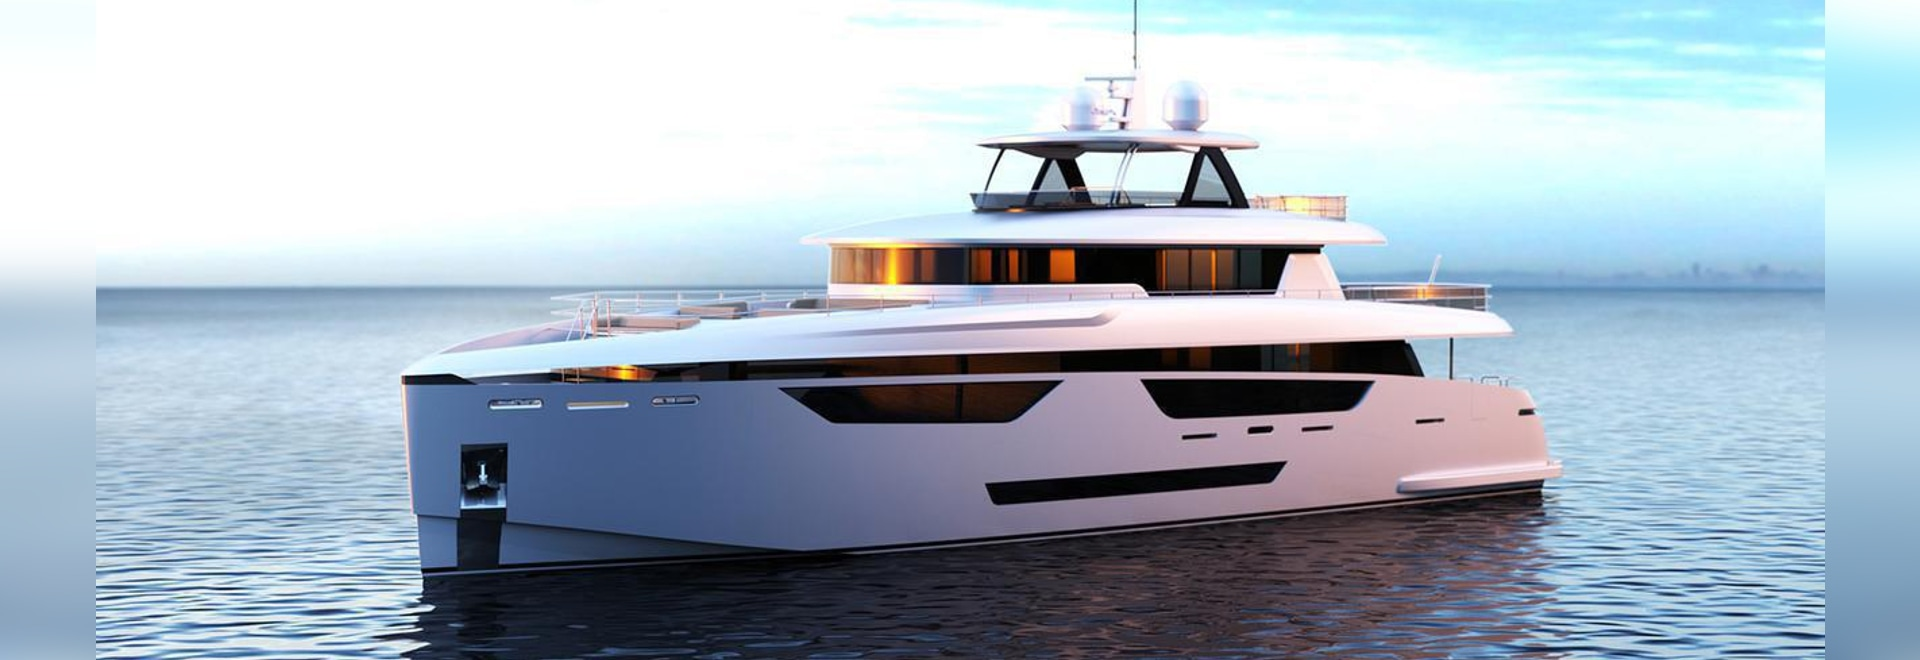 Exterior design comes from Dixon Yacht Design while Design Unlimited has handled the interior design